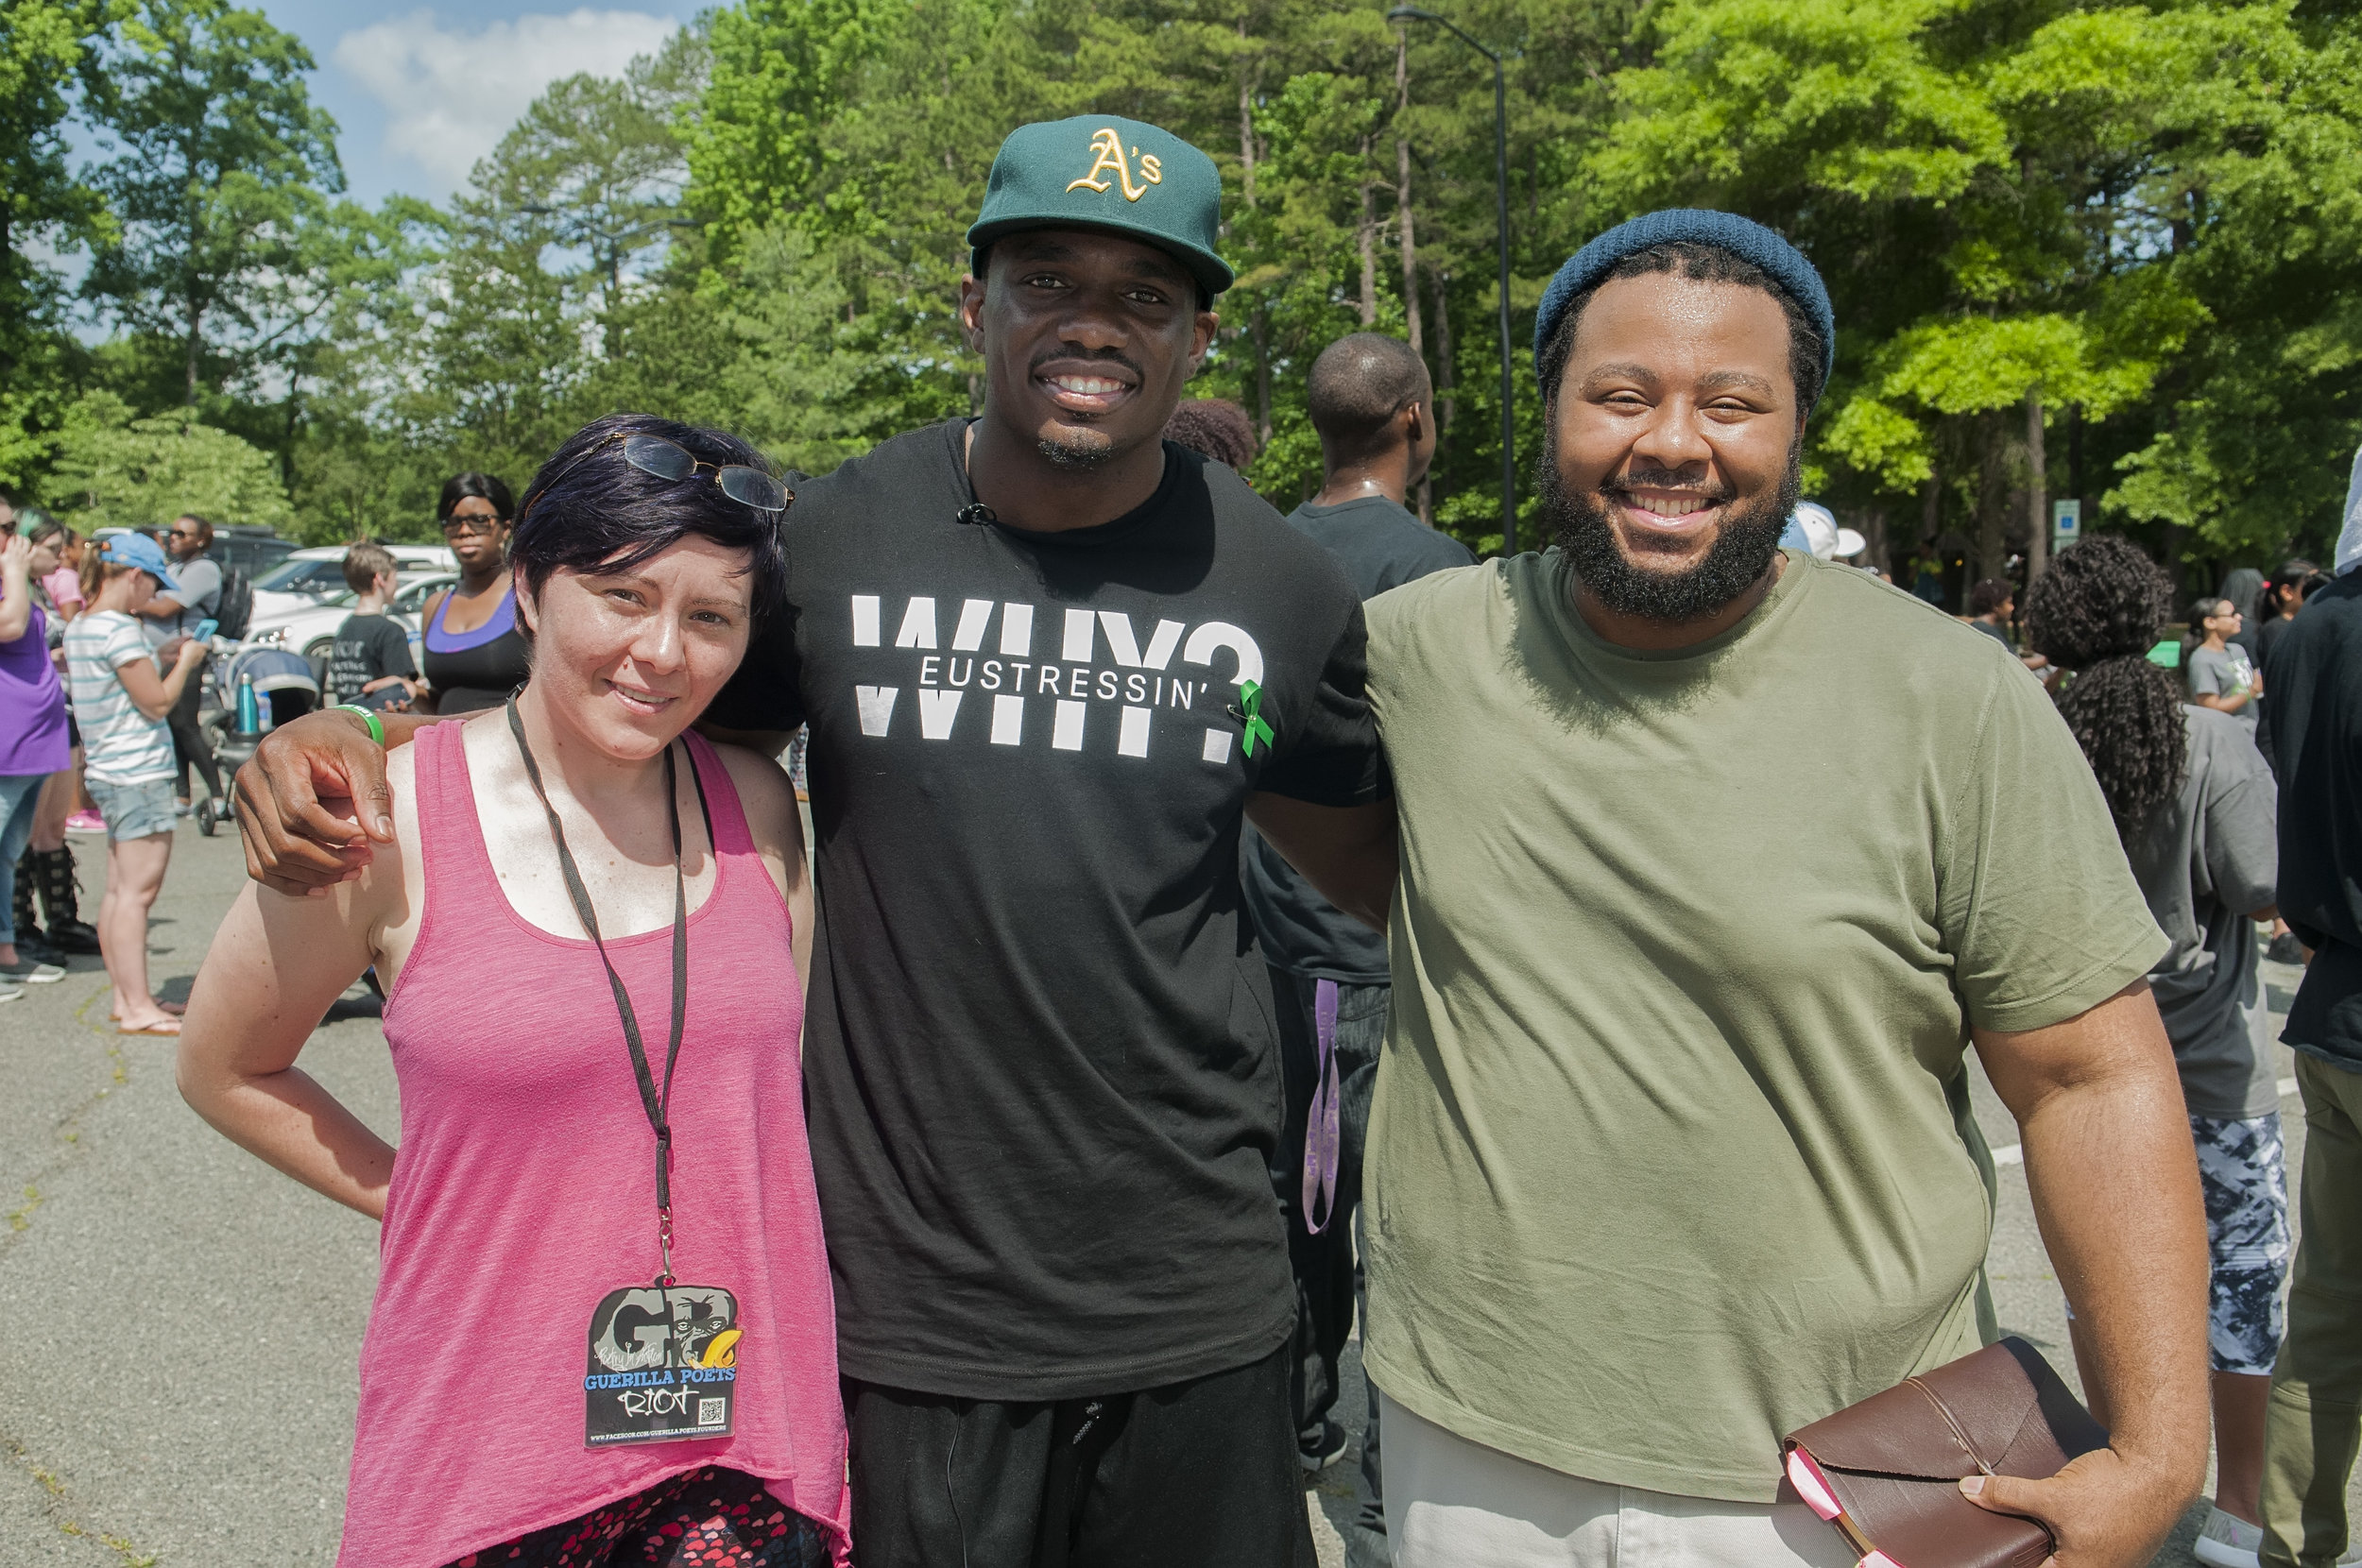 2nd Annual Let's Talk About It Mental Health Awareness Walk @ Park Rd Park 5-20-17 by Jon Strayhorn 124.jpg